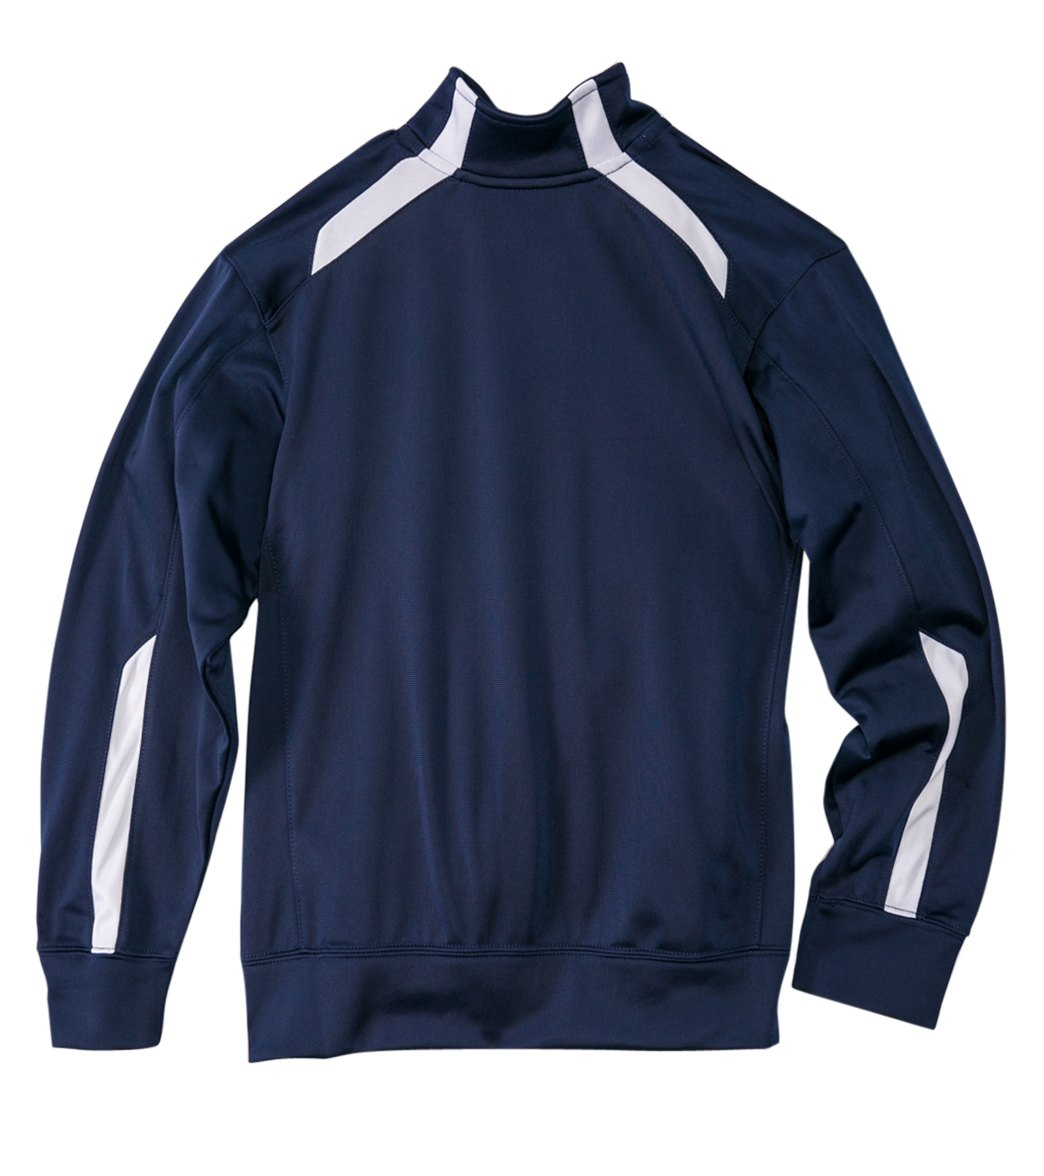 Nike Swim Youth Overtime Warm-Up Jacket at SwimOutlet.com